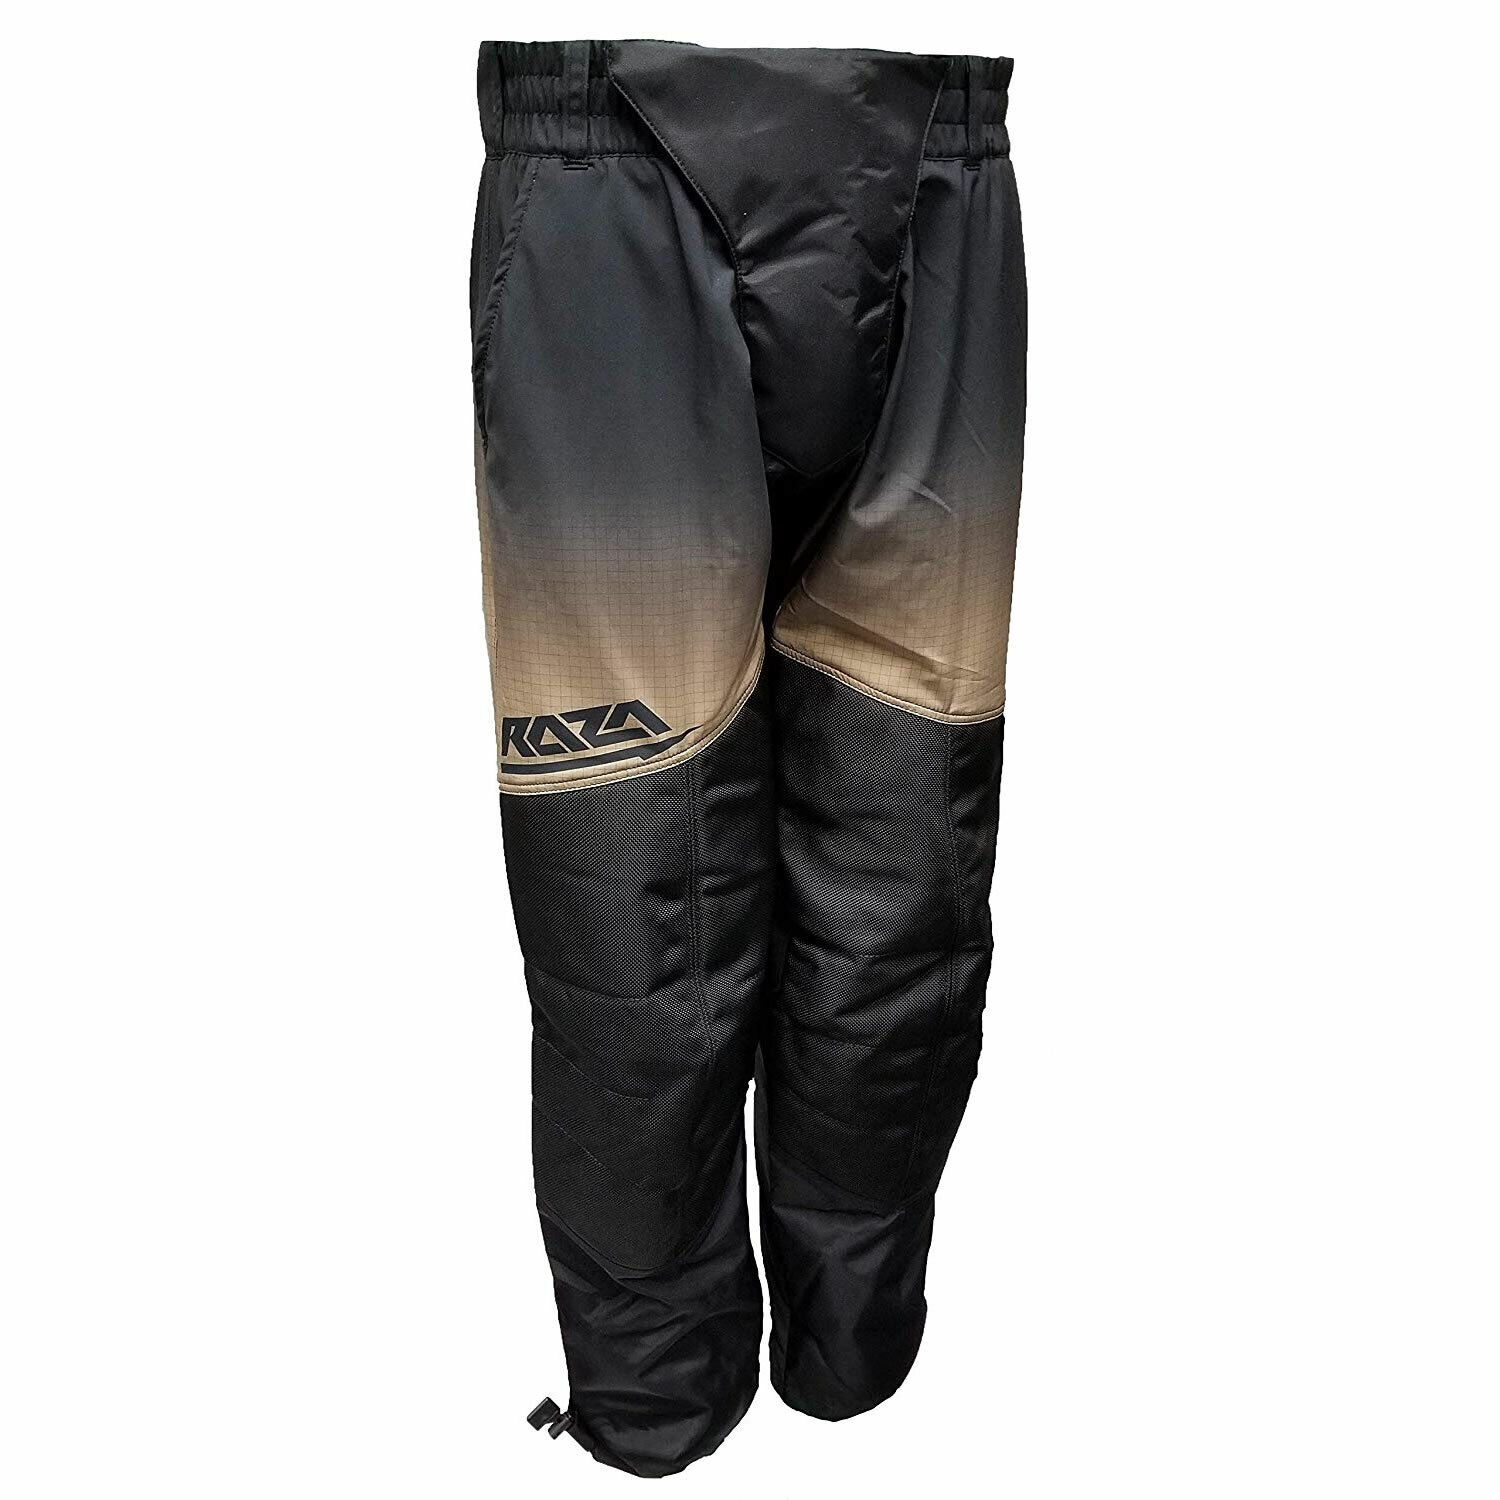 Raza HDM Pantalon 2-Coyote Grille-XX-Large-PAINTBALL